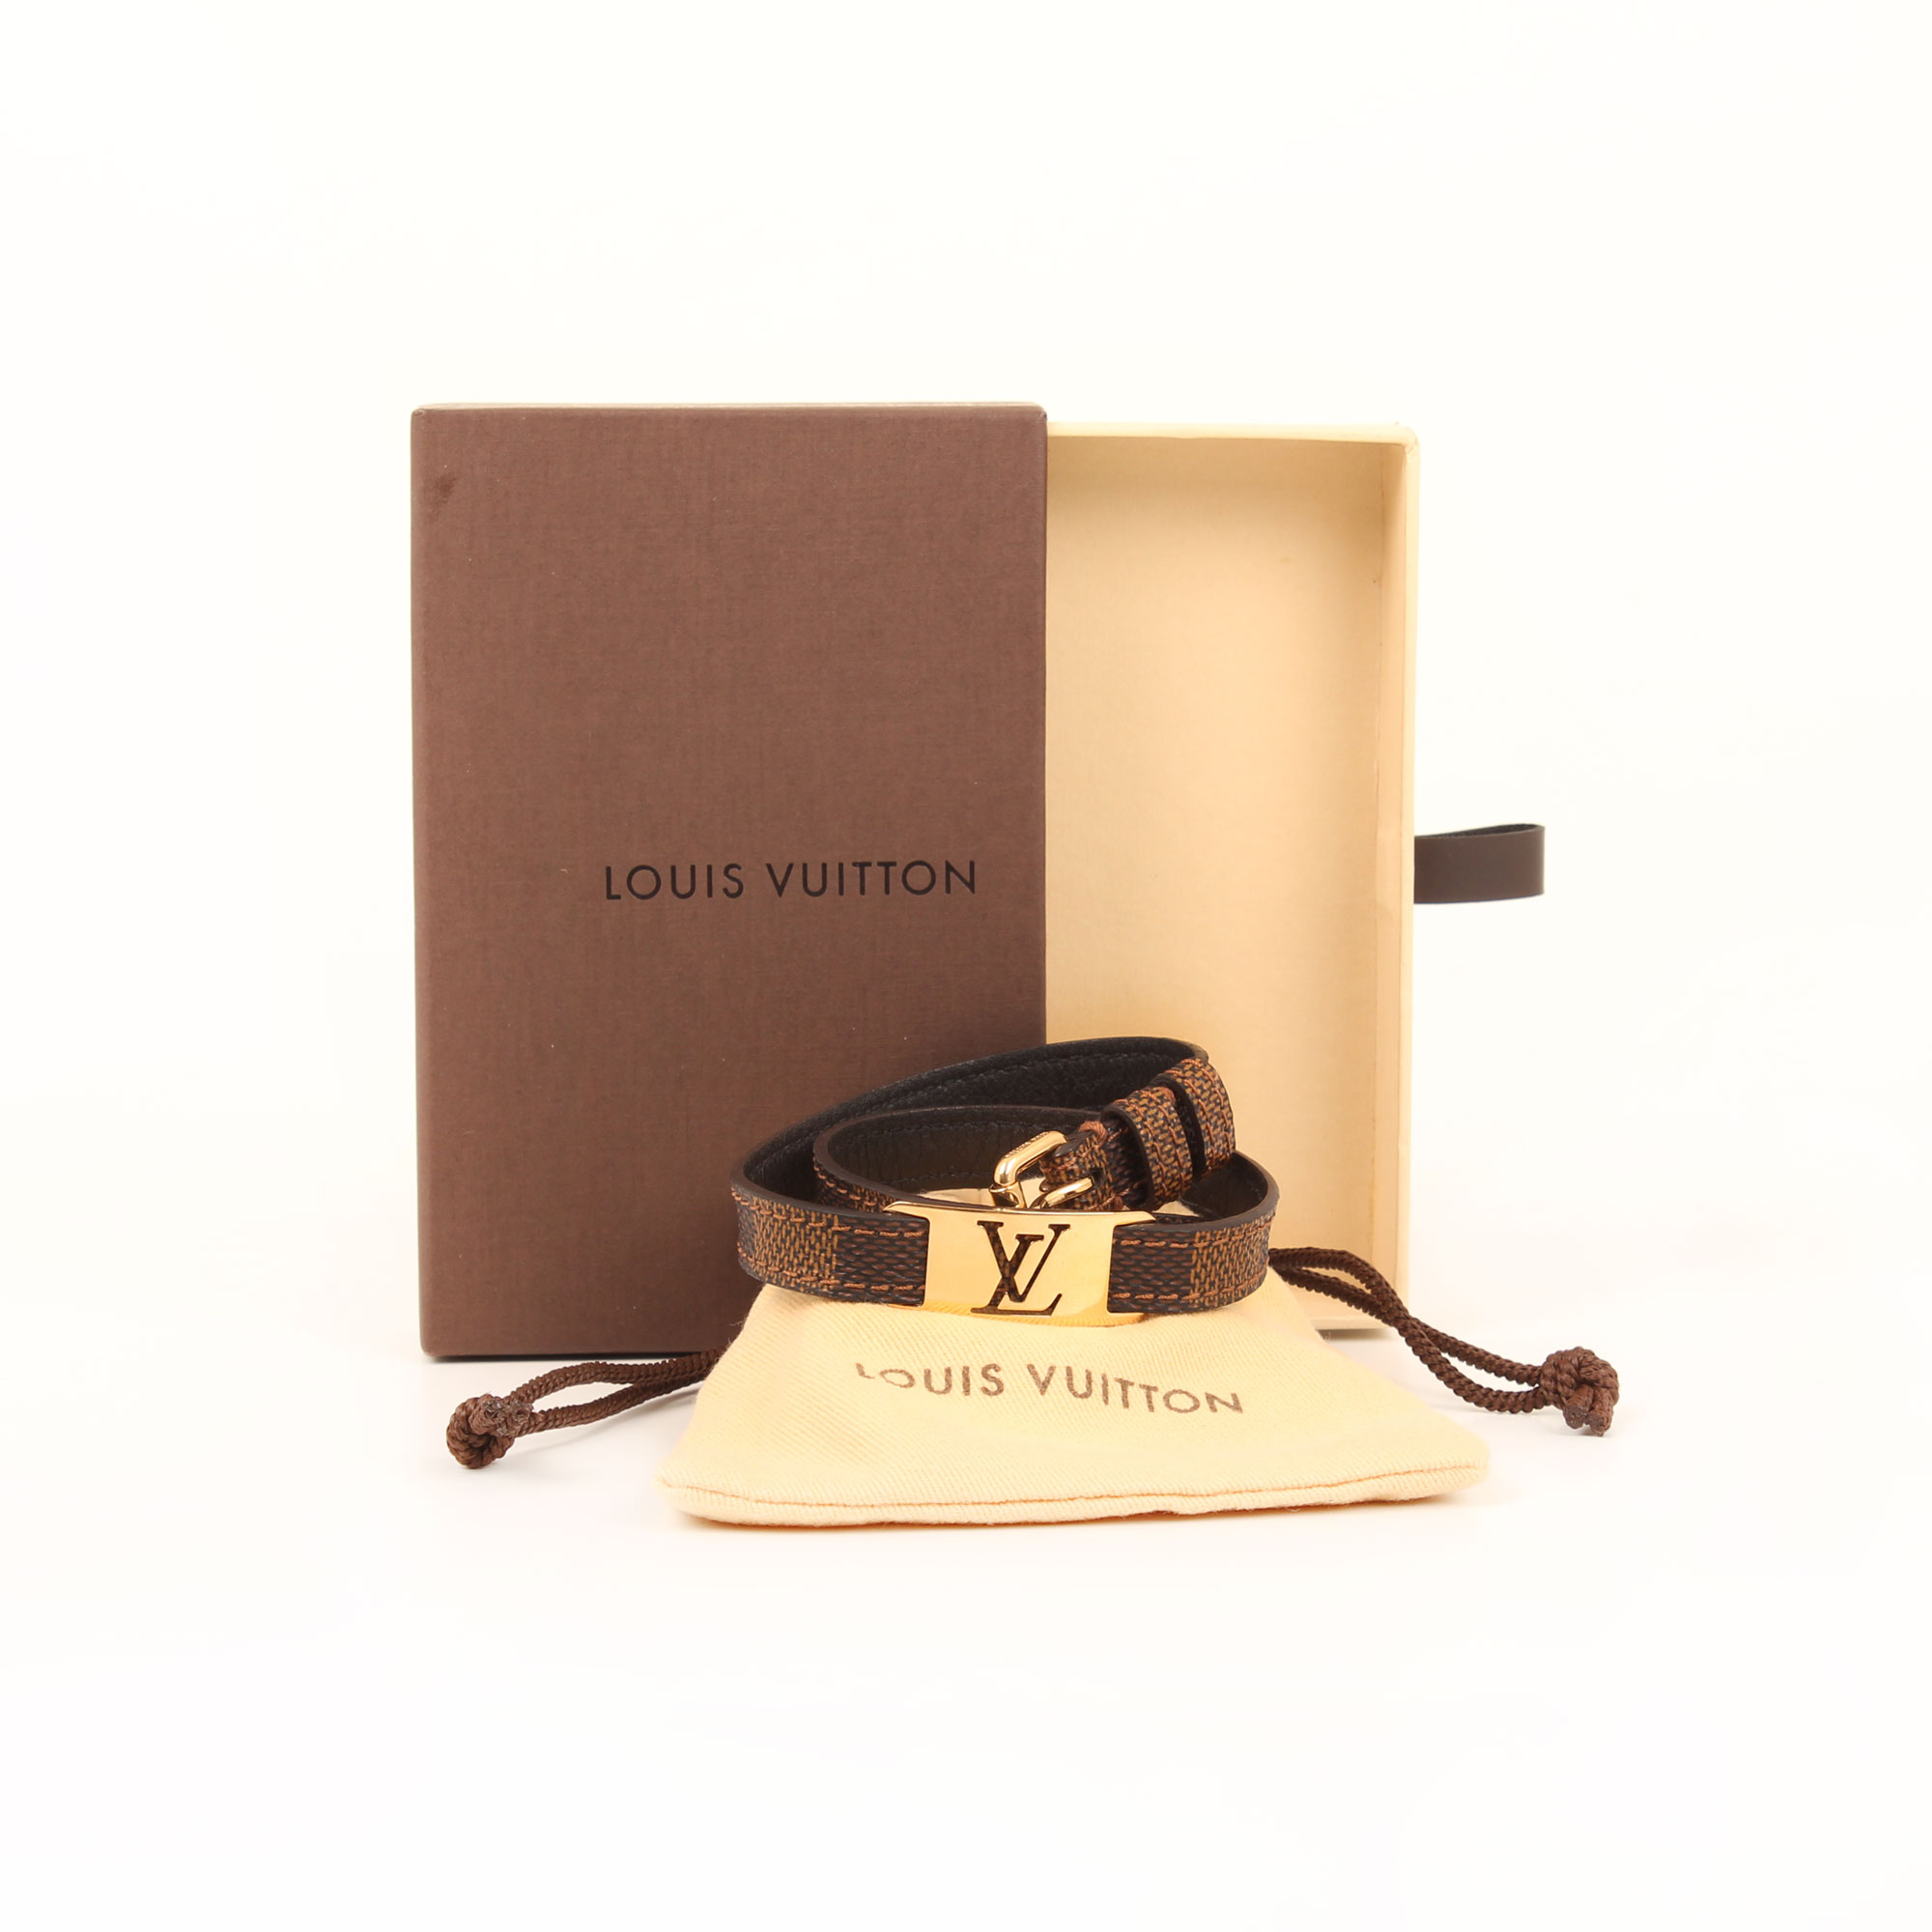 Imagen de los extras de la pulsera louis vuitton sign it damier